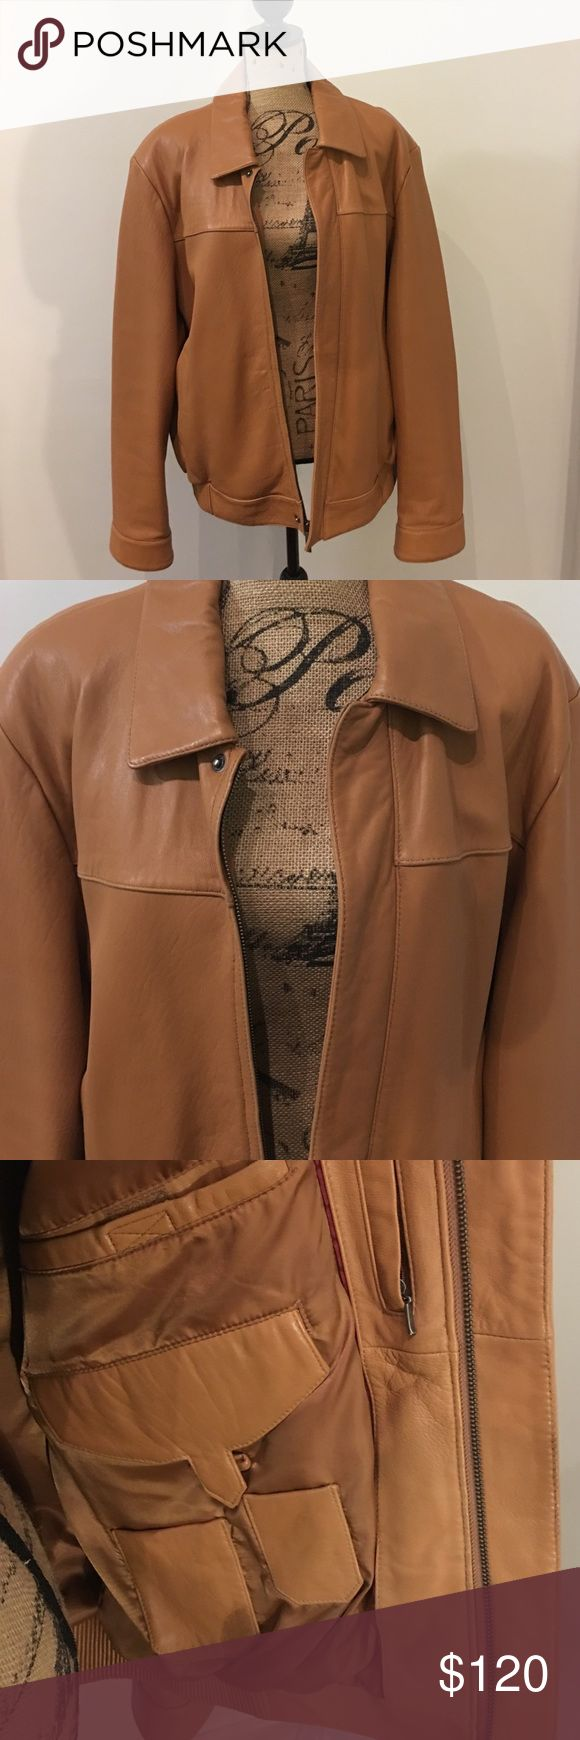 Nicole Miller Men's Leather Jacket Genuine leather men's jacket. Has compartments on the inside. Moderately worn and in very good condition. Beautiful genuine leather. Nicole Miller Jackets & Coats